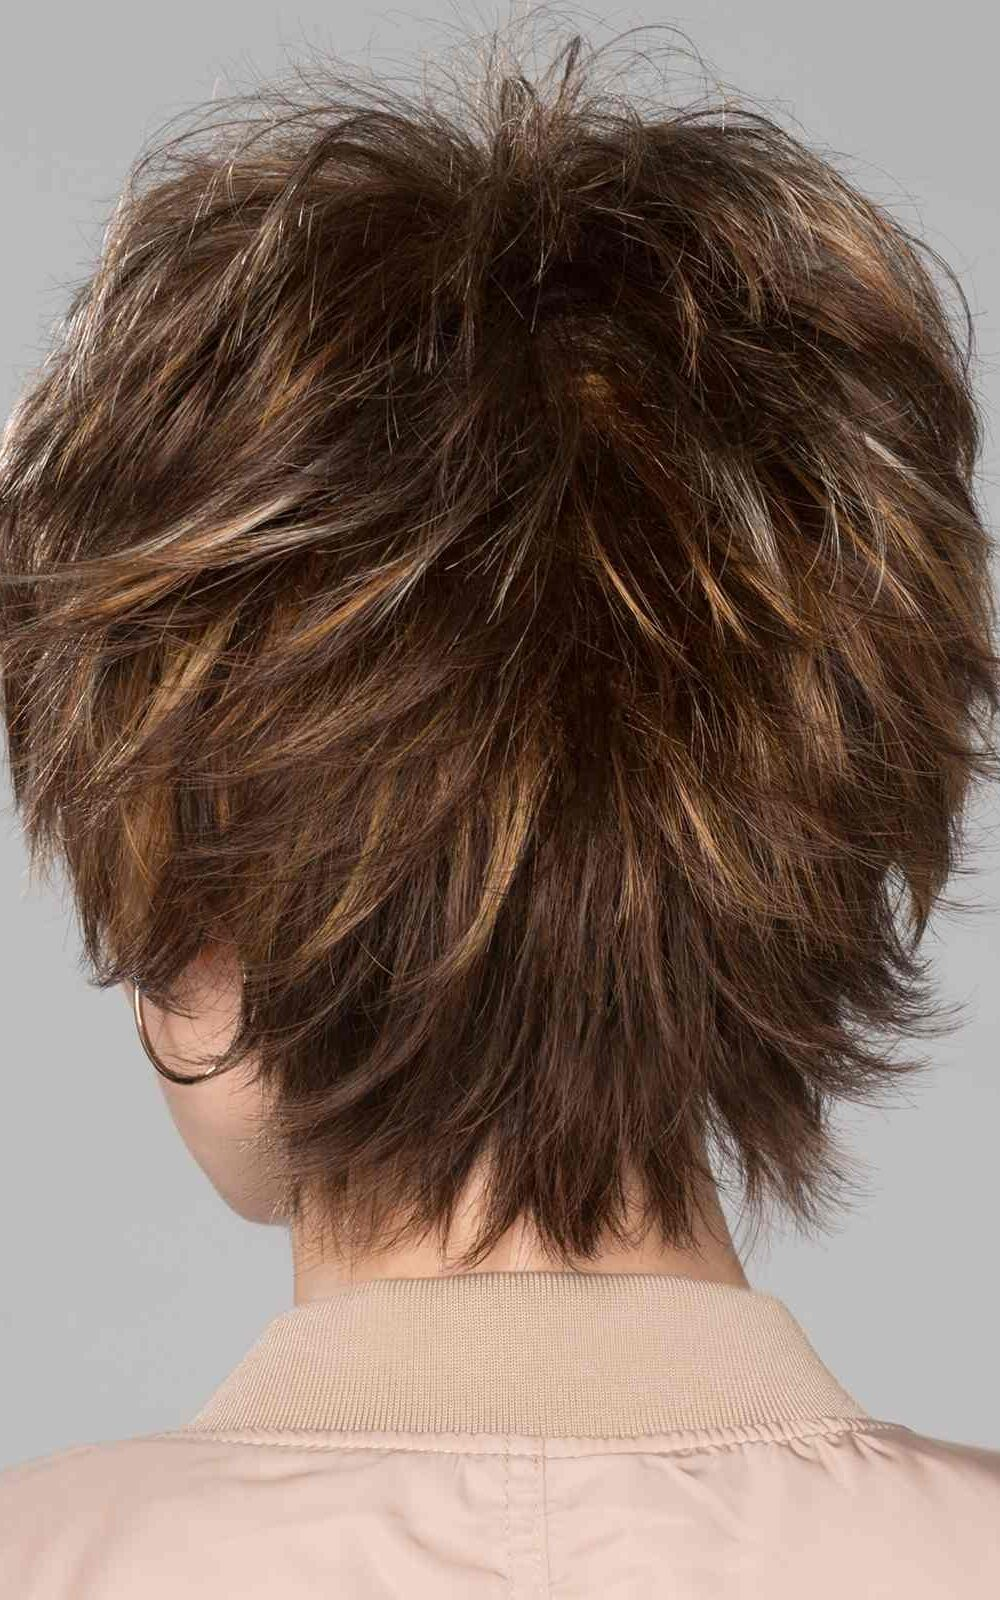 Click Wig by Ellen Wille | Tapered neckline layers blend the choppy crown length | Black | Elly-K.com.au